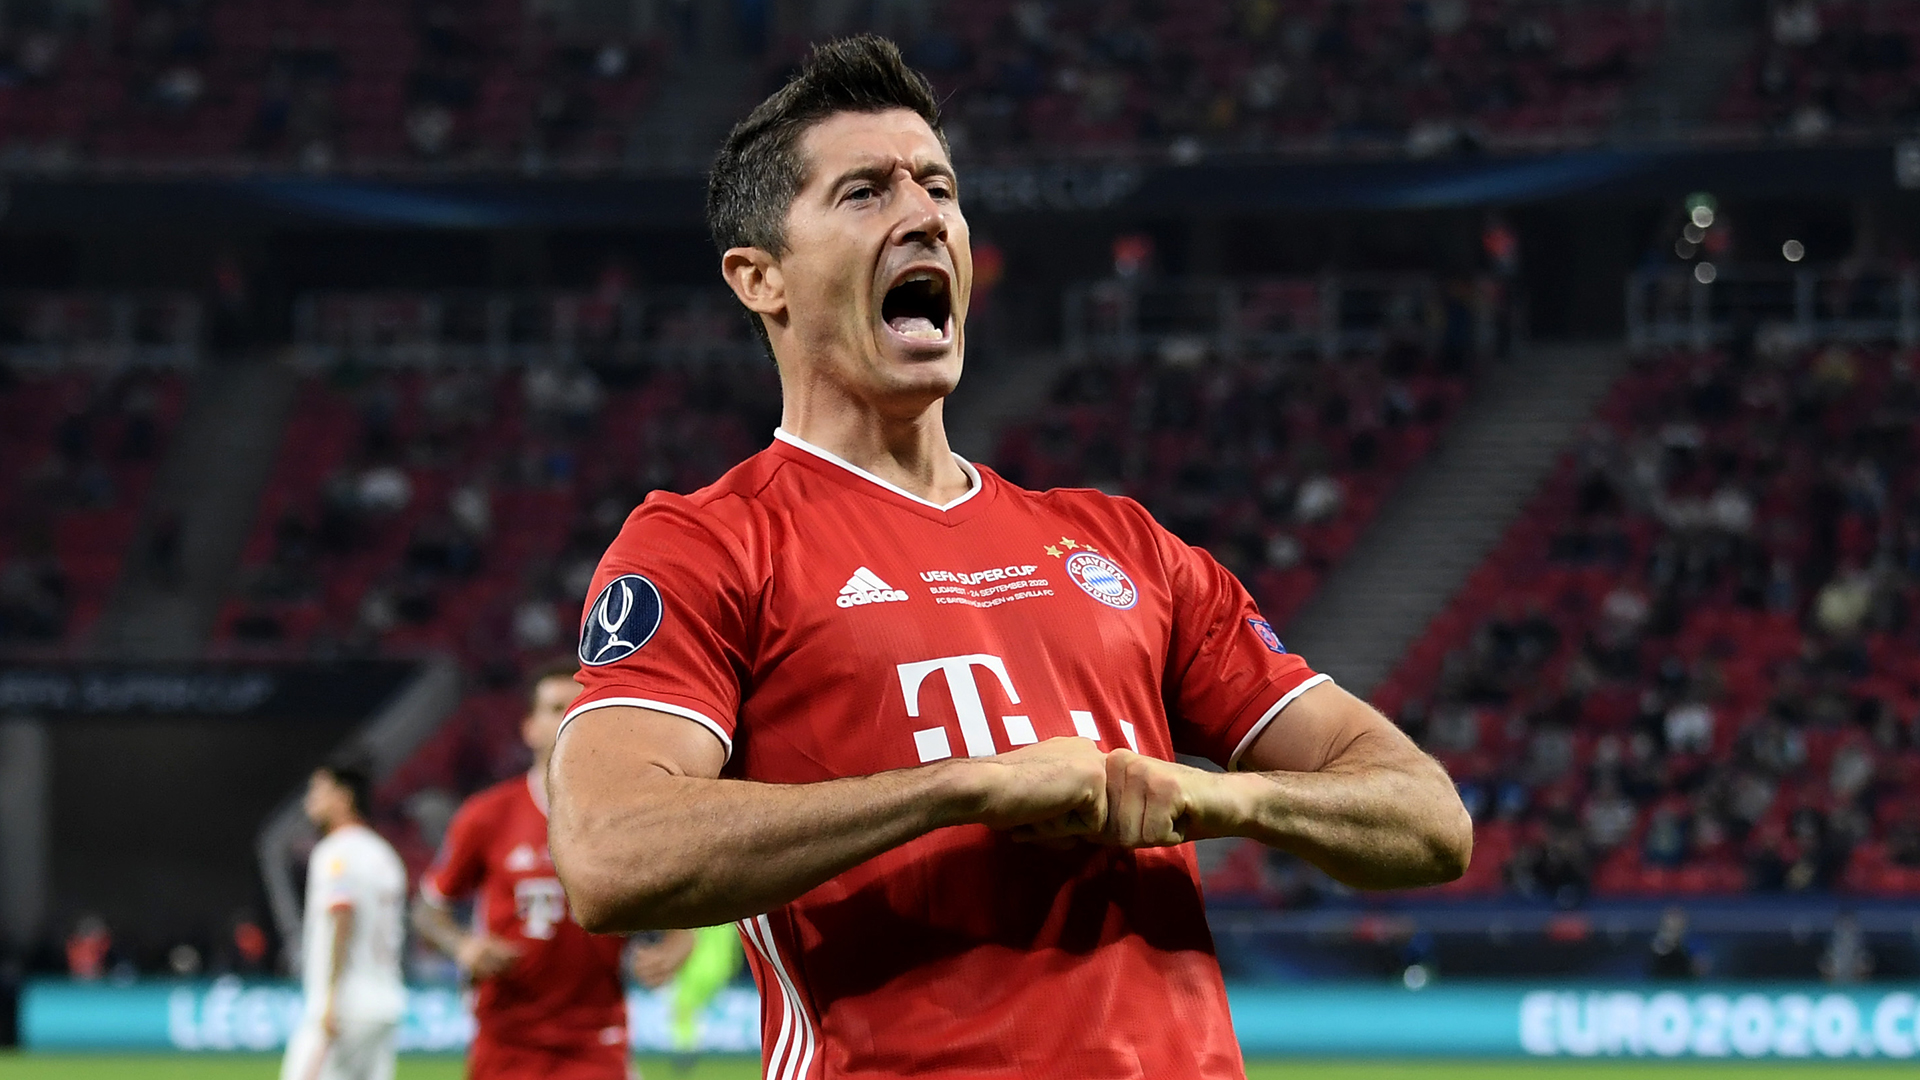 Mancini: It's a pity we never got to see Lewandowski playing in Serie A